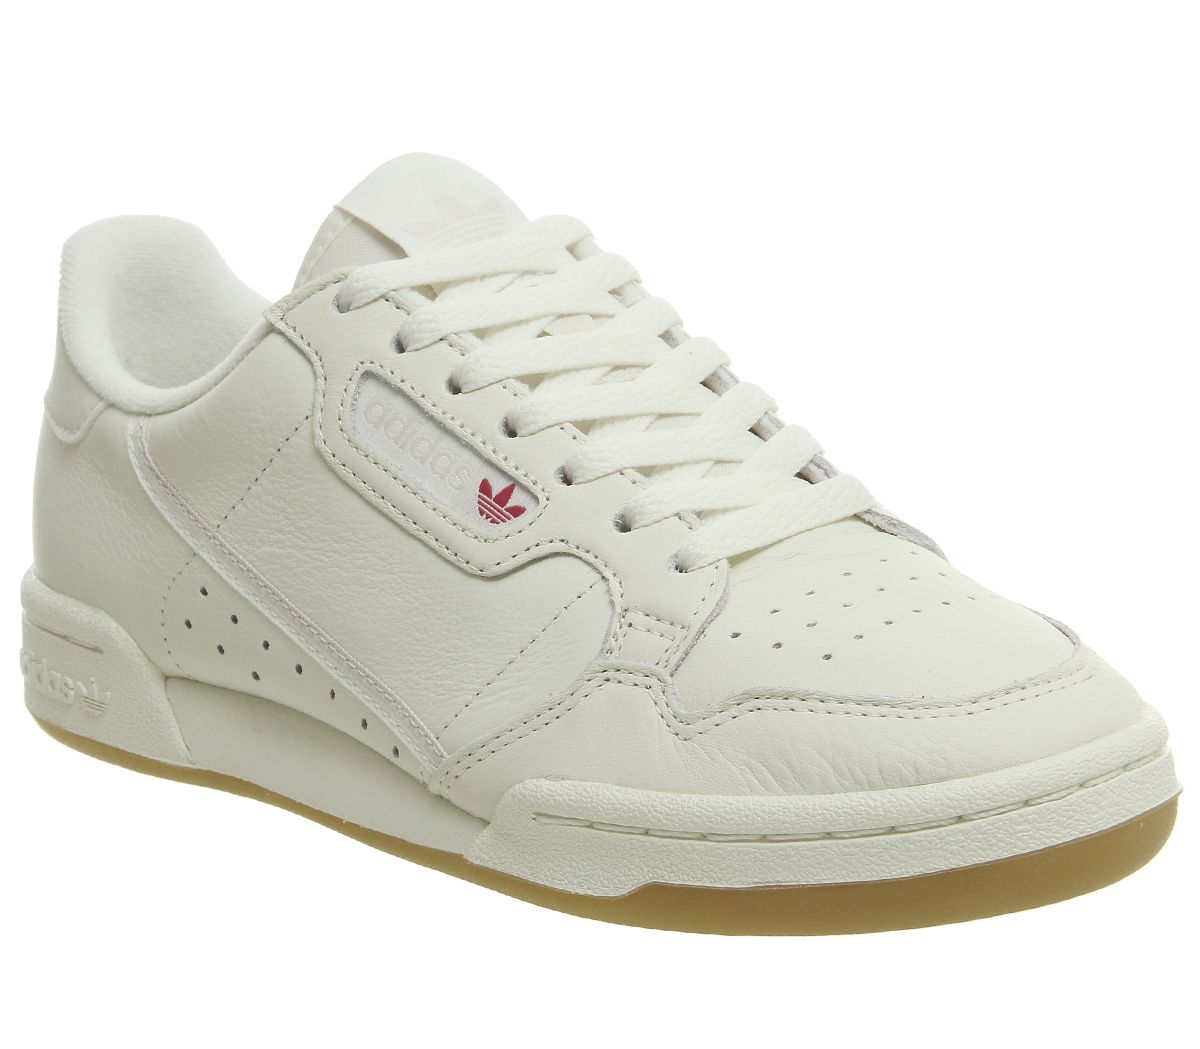 finest selection bce26 34f4b adidas 80s Continental Trainers Off White Raw White Gum - His trainers